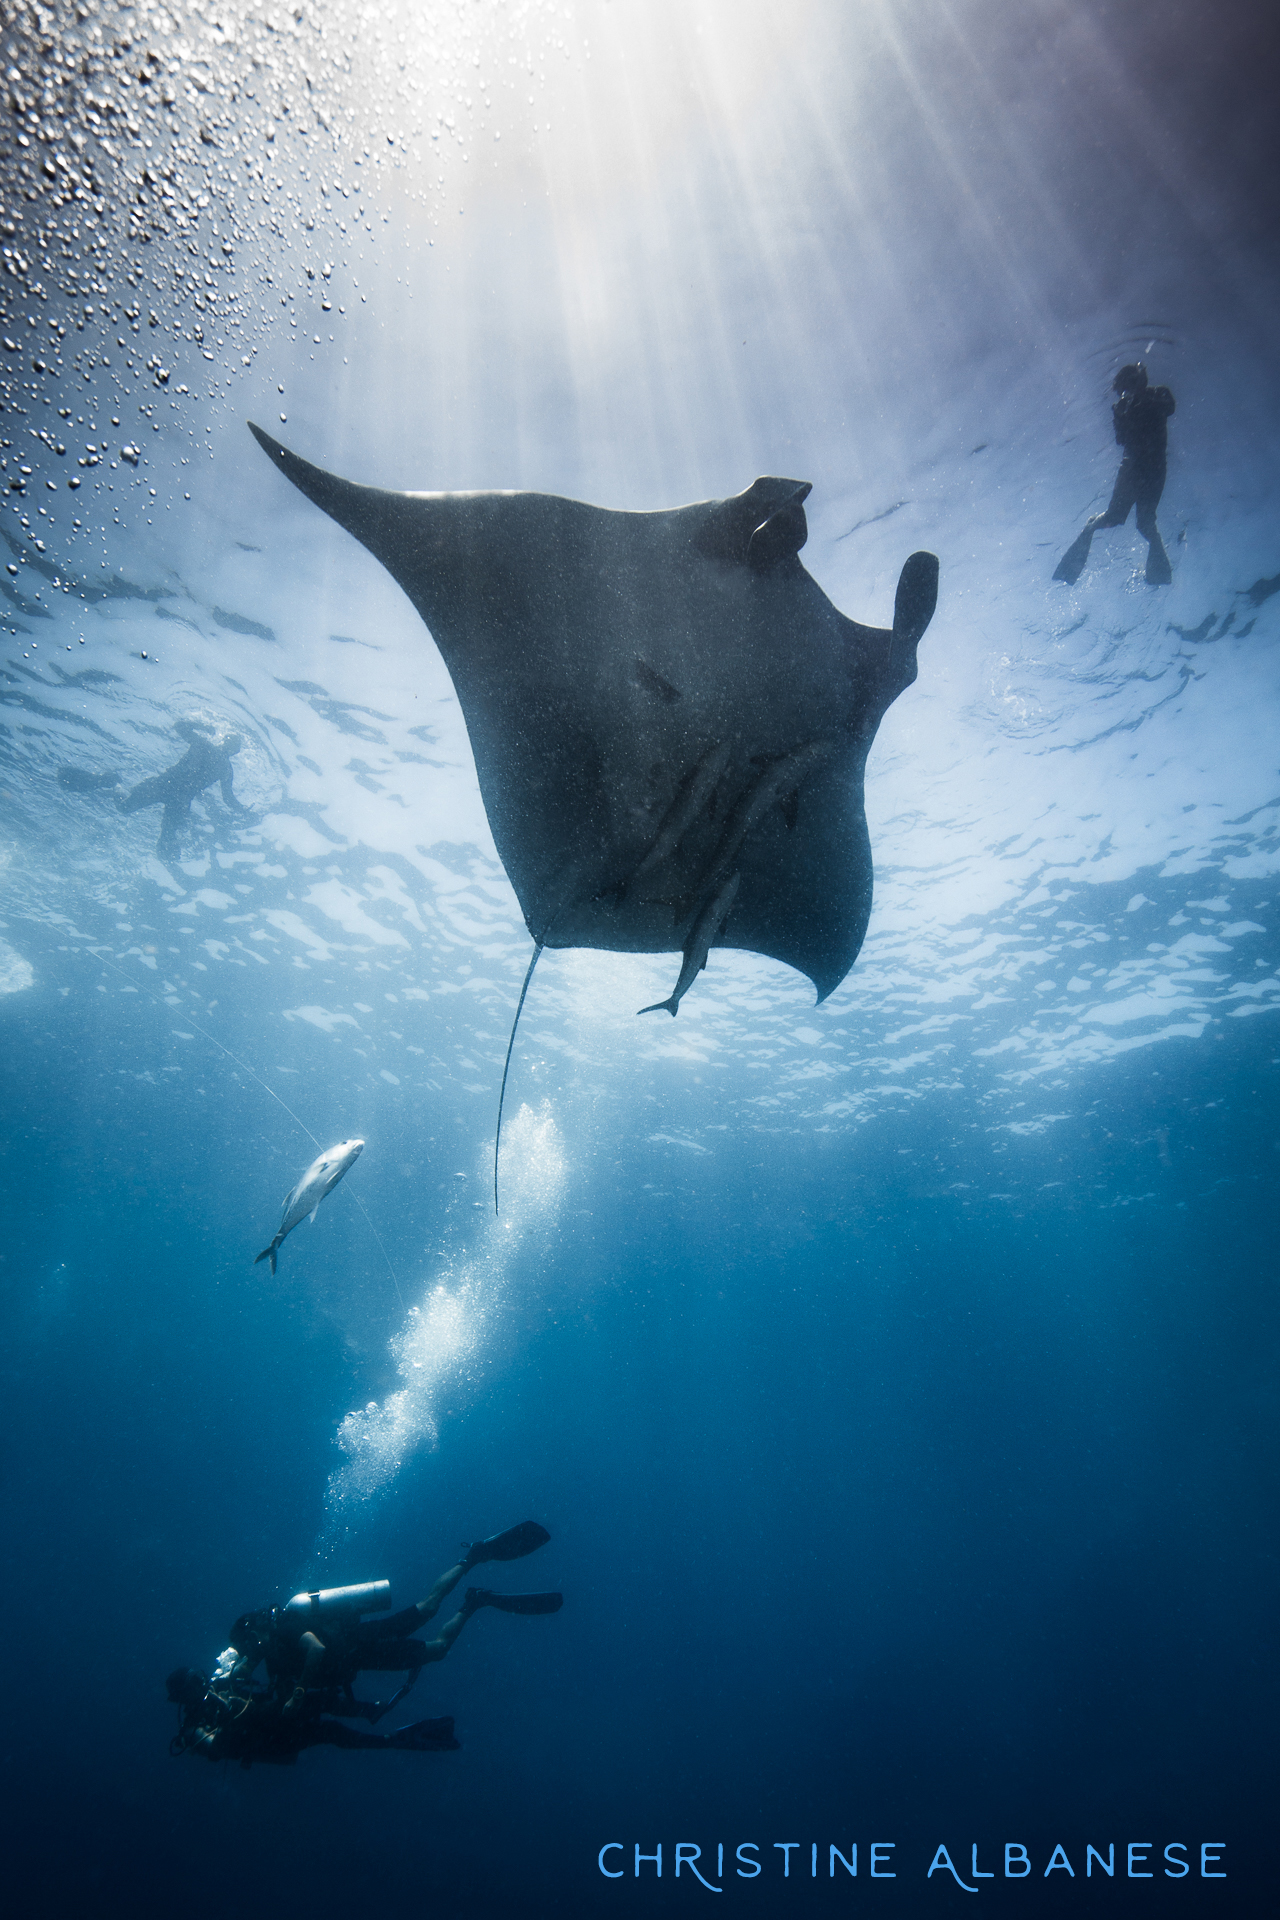 I absolutely adore Mantas!